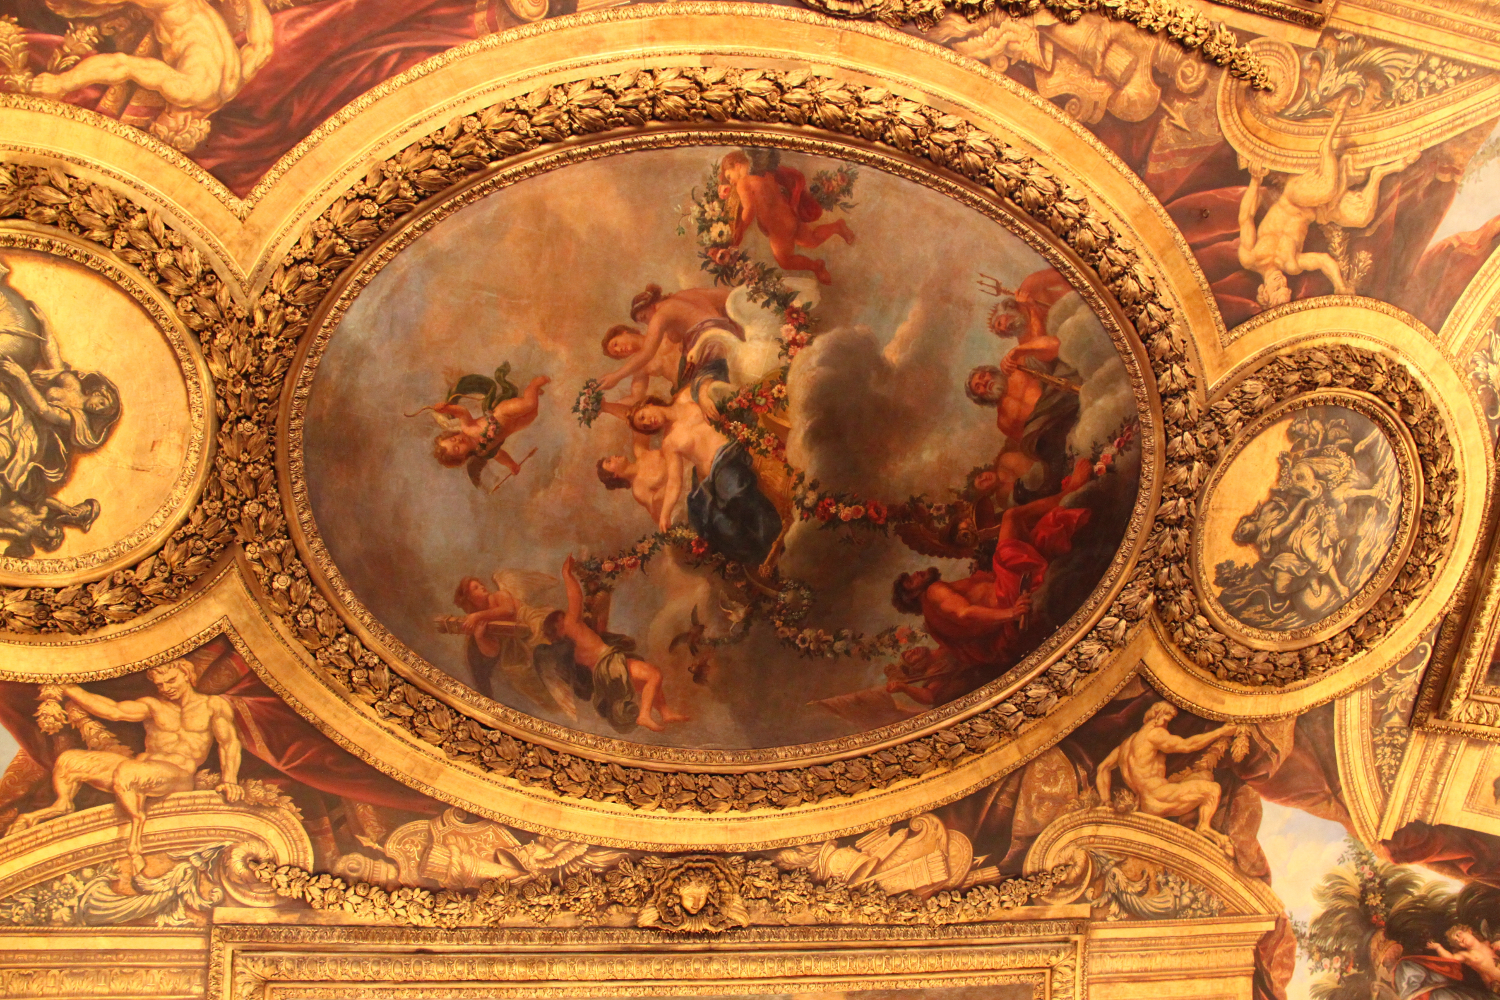 Palace of Versailles painting